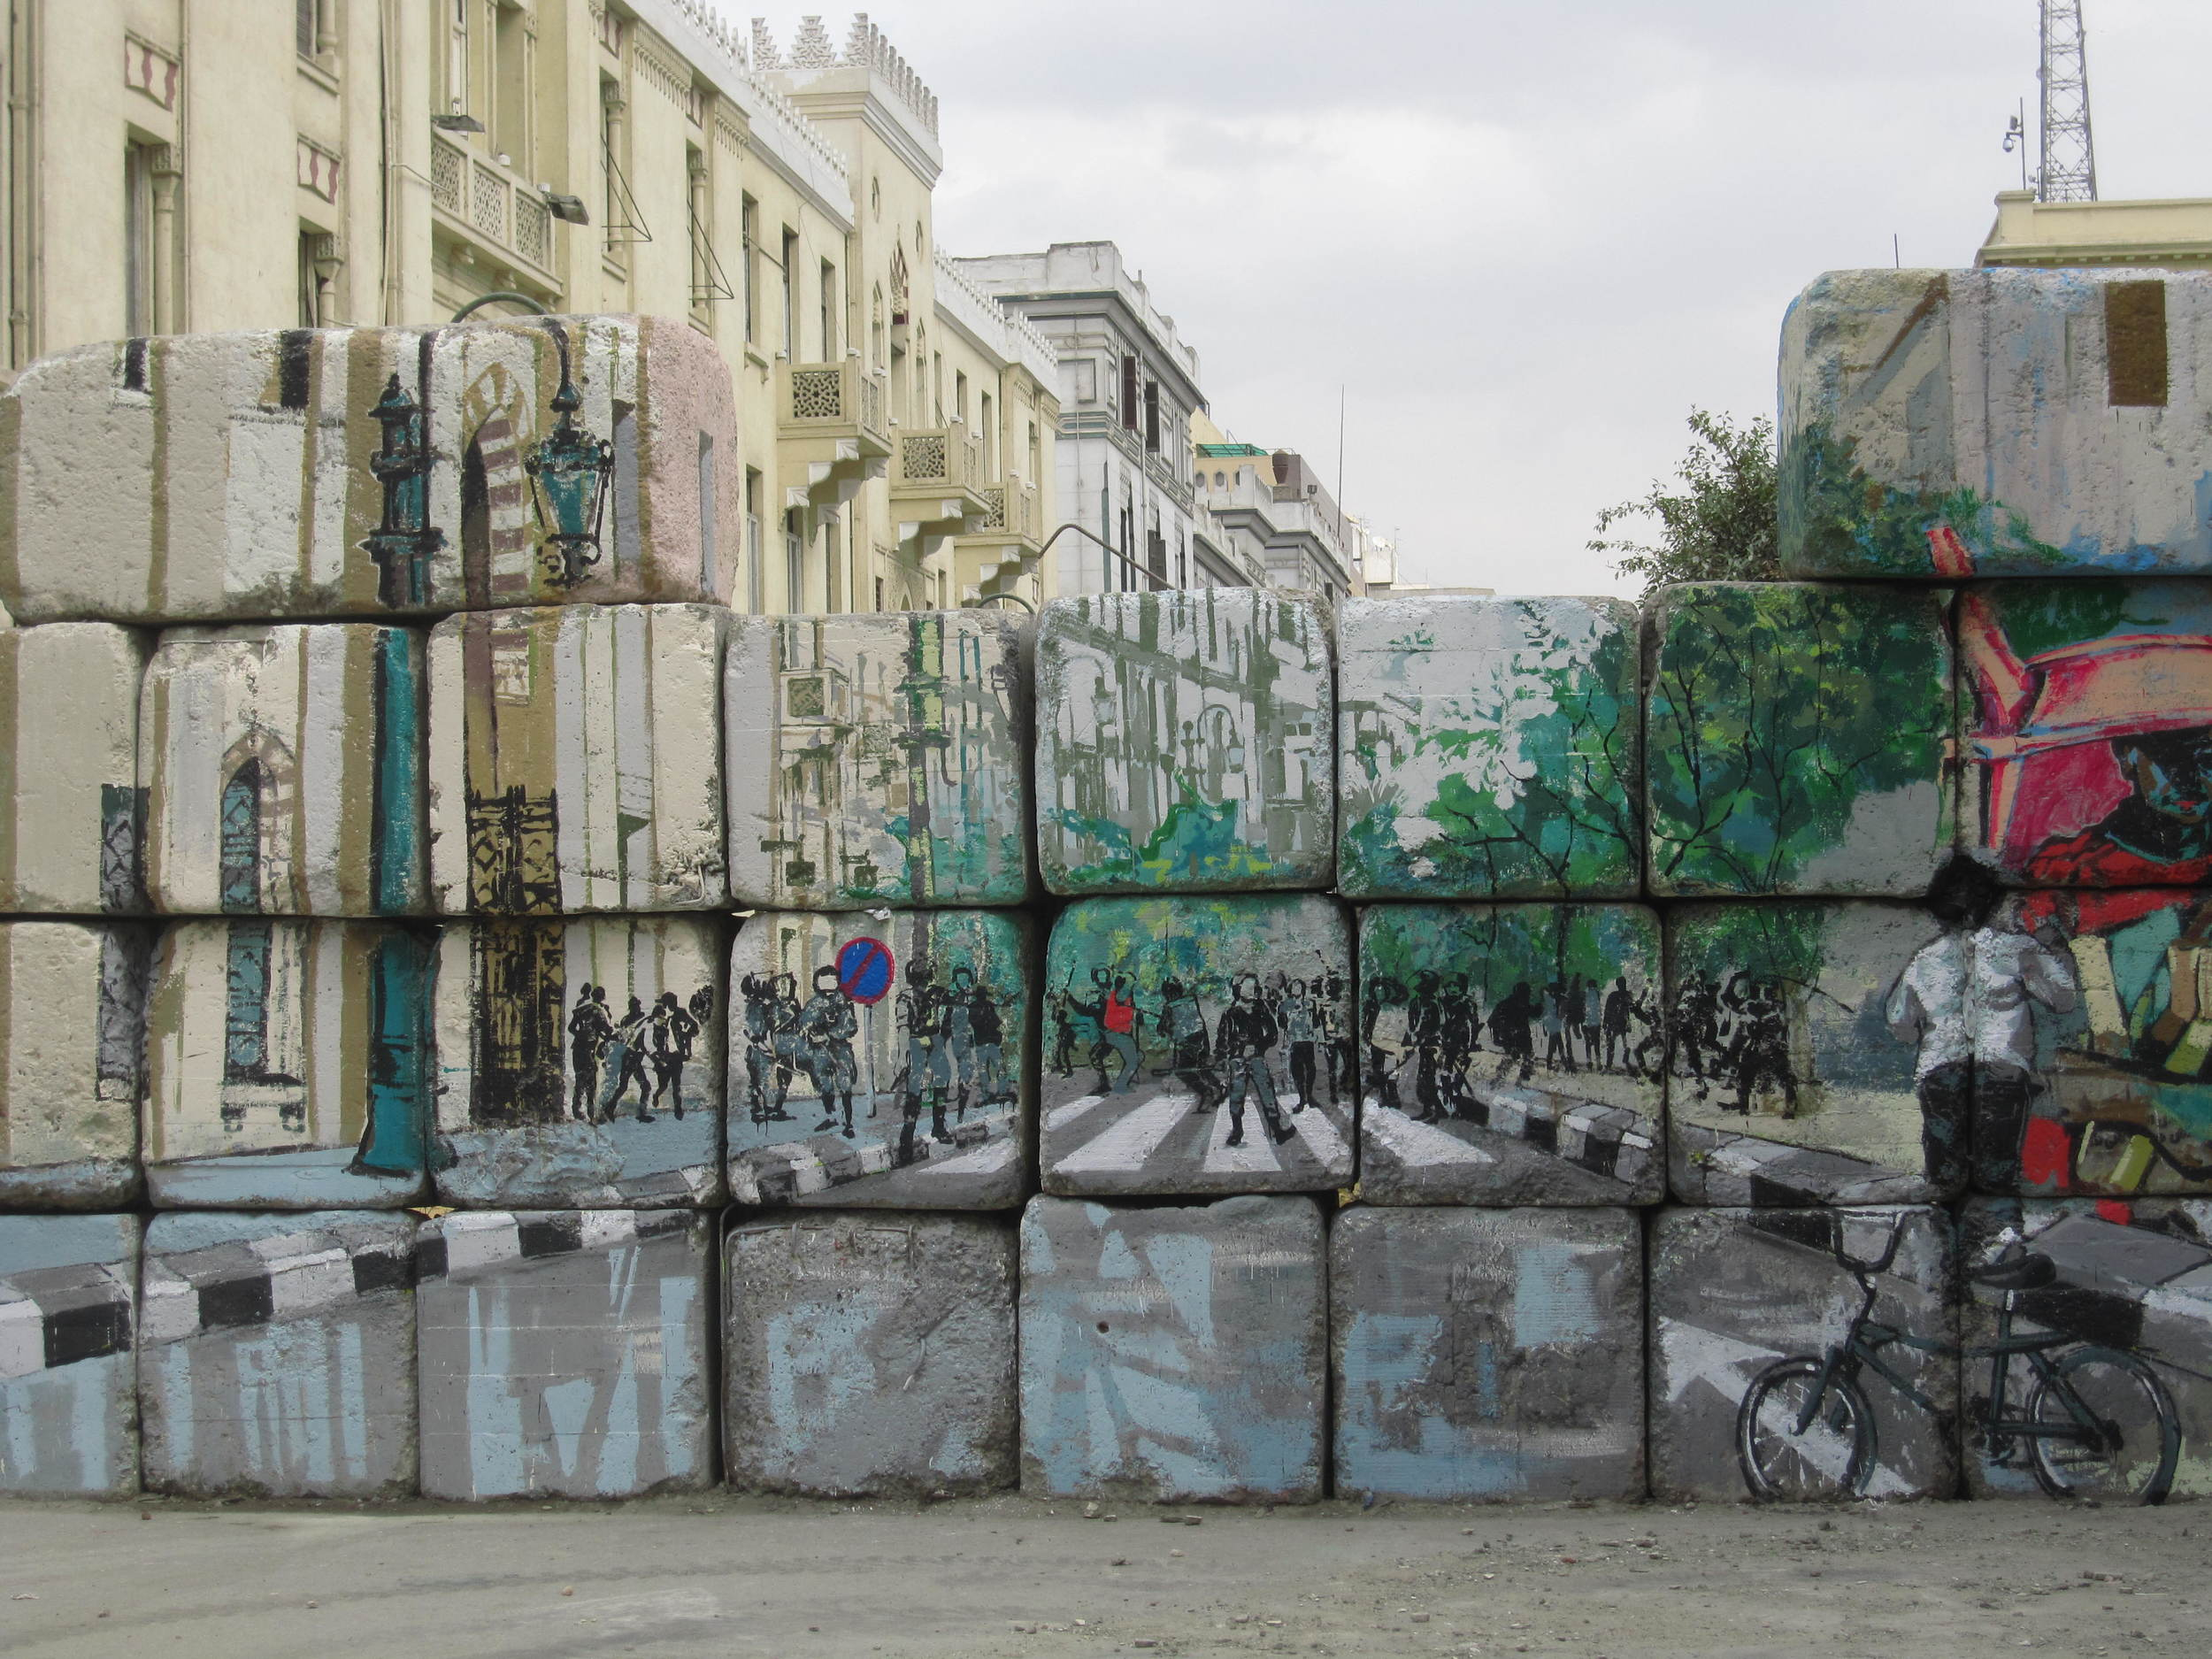 Graffiti on a blockade put up by the authorities in March 2012